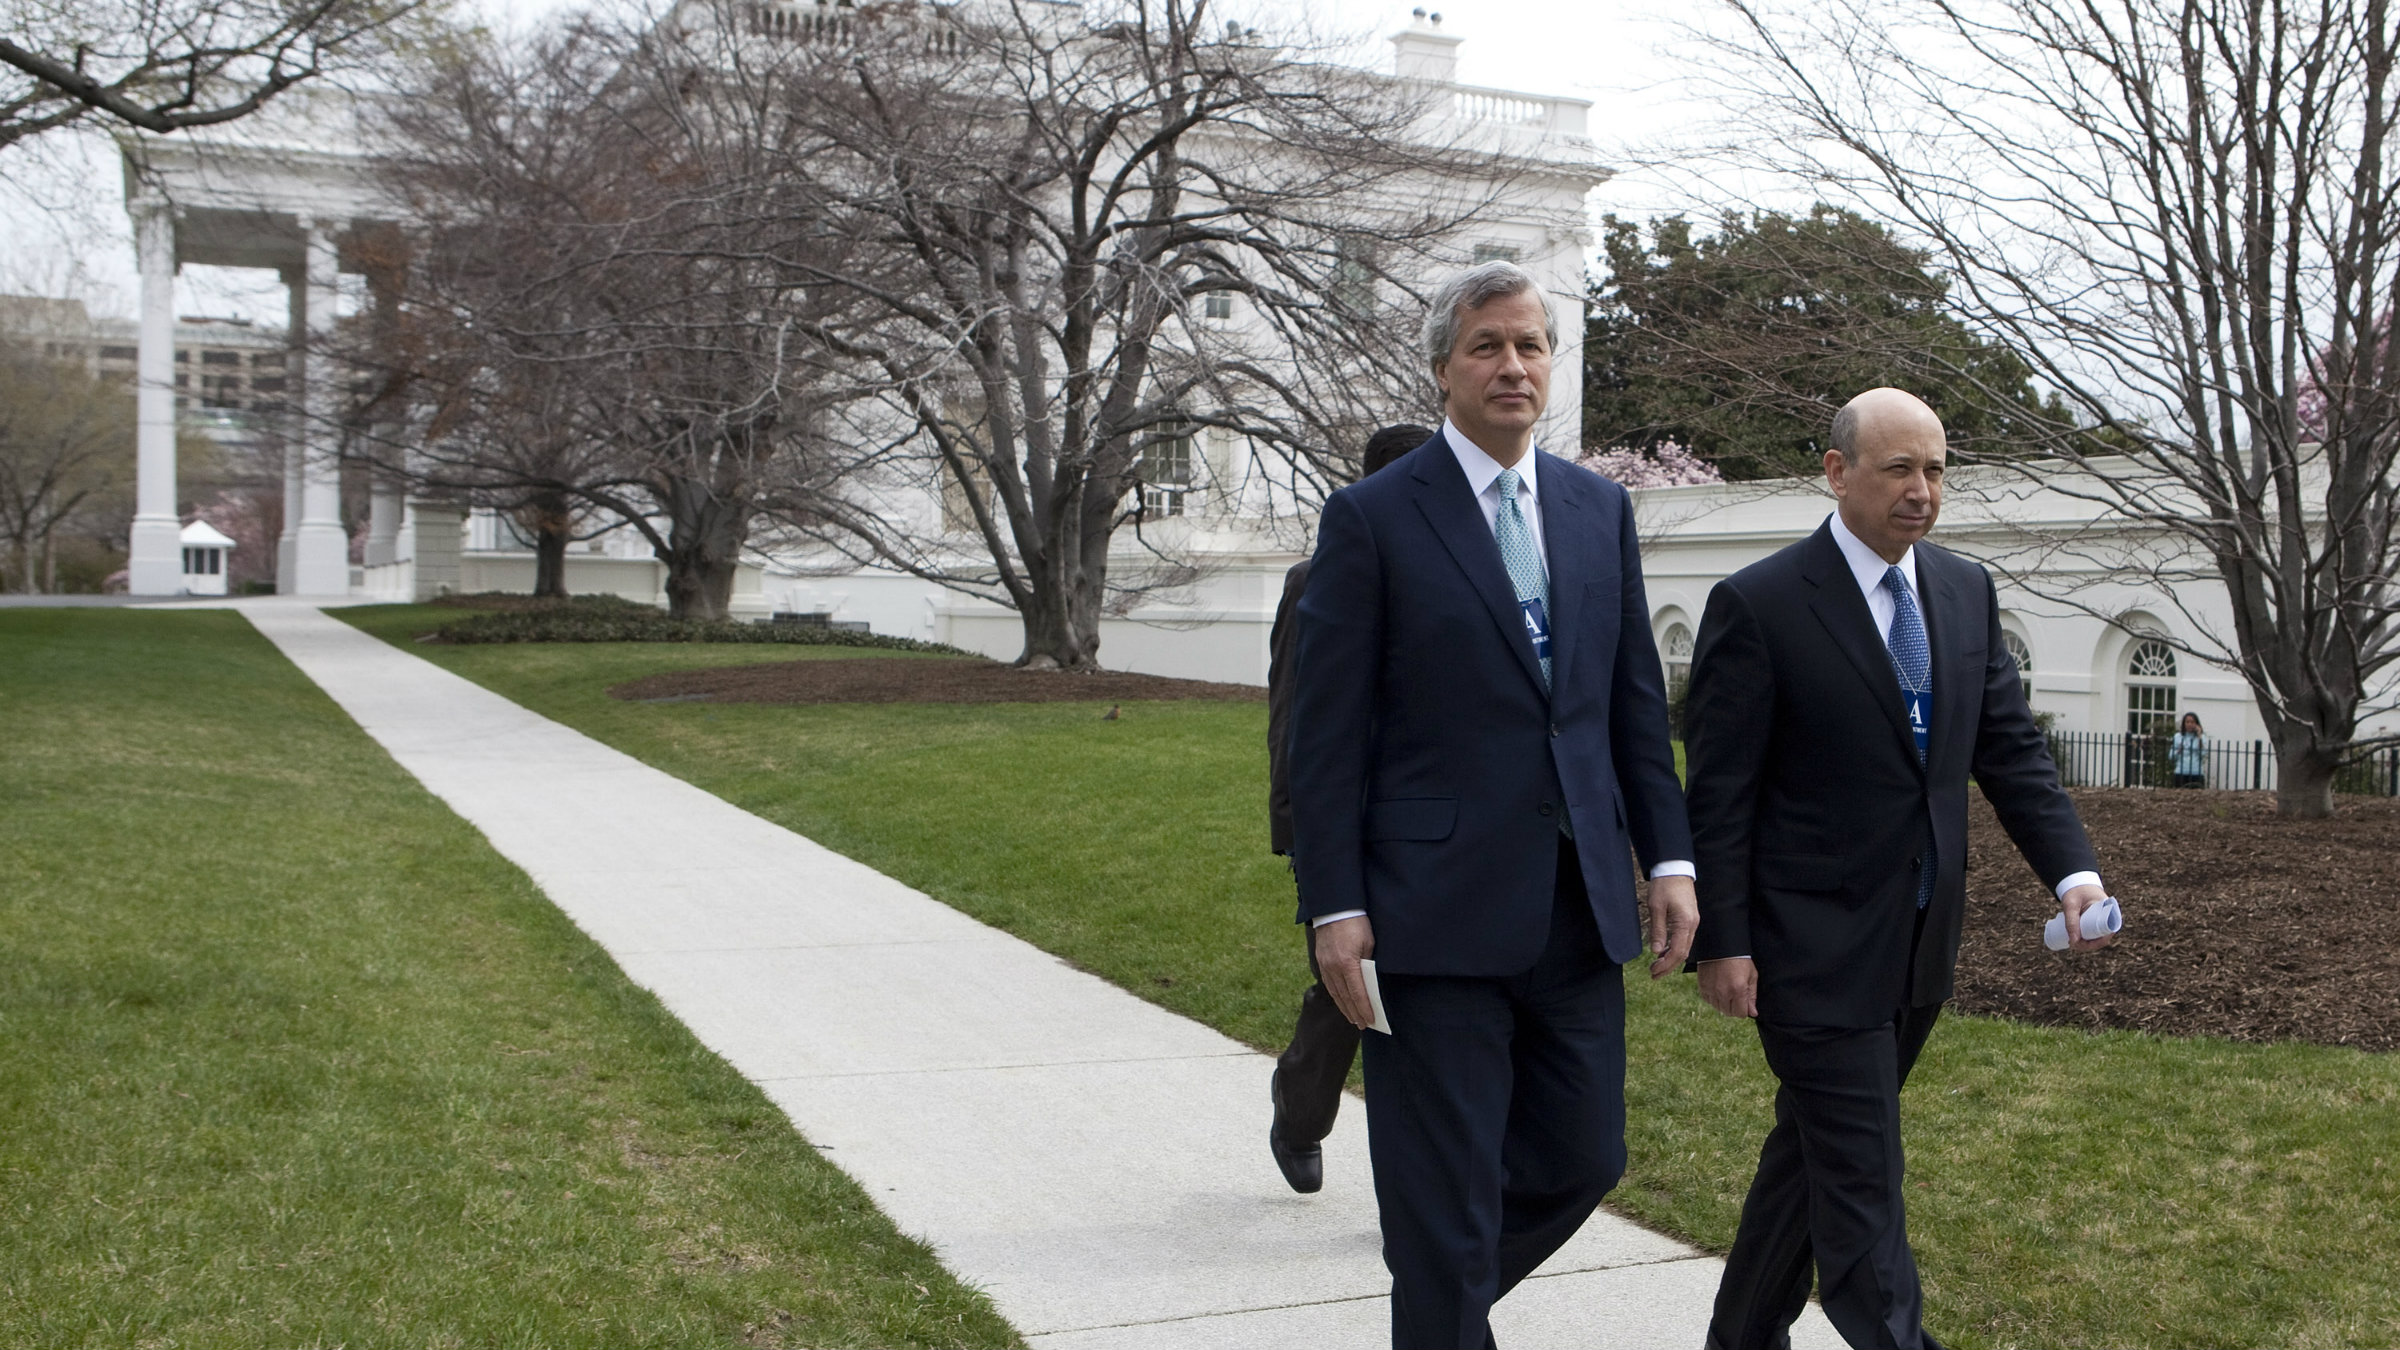 Lloyd Blankfein, pictured right, leaving the White House with JP Morgan CEO Jamie Dimon. Neither will be there today.